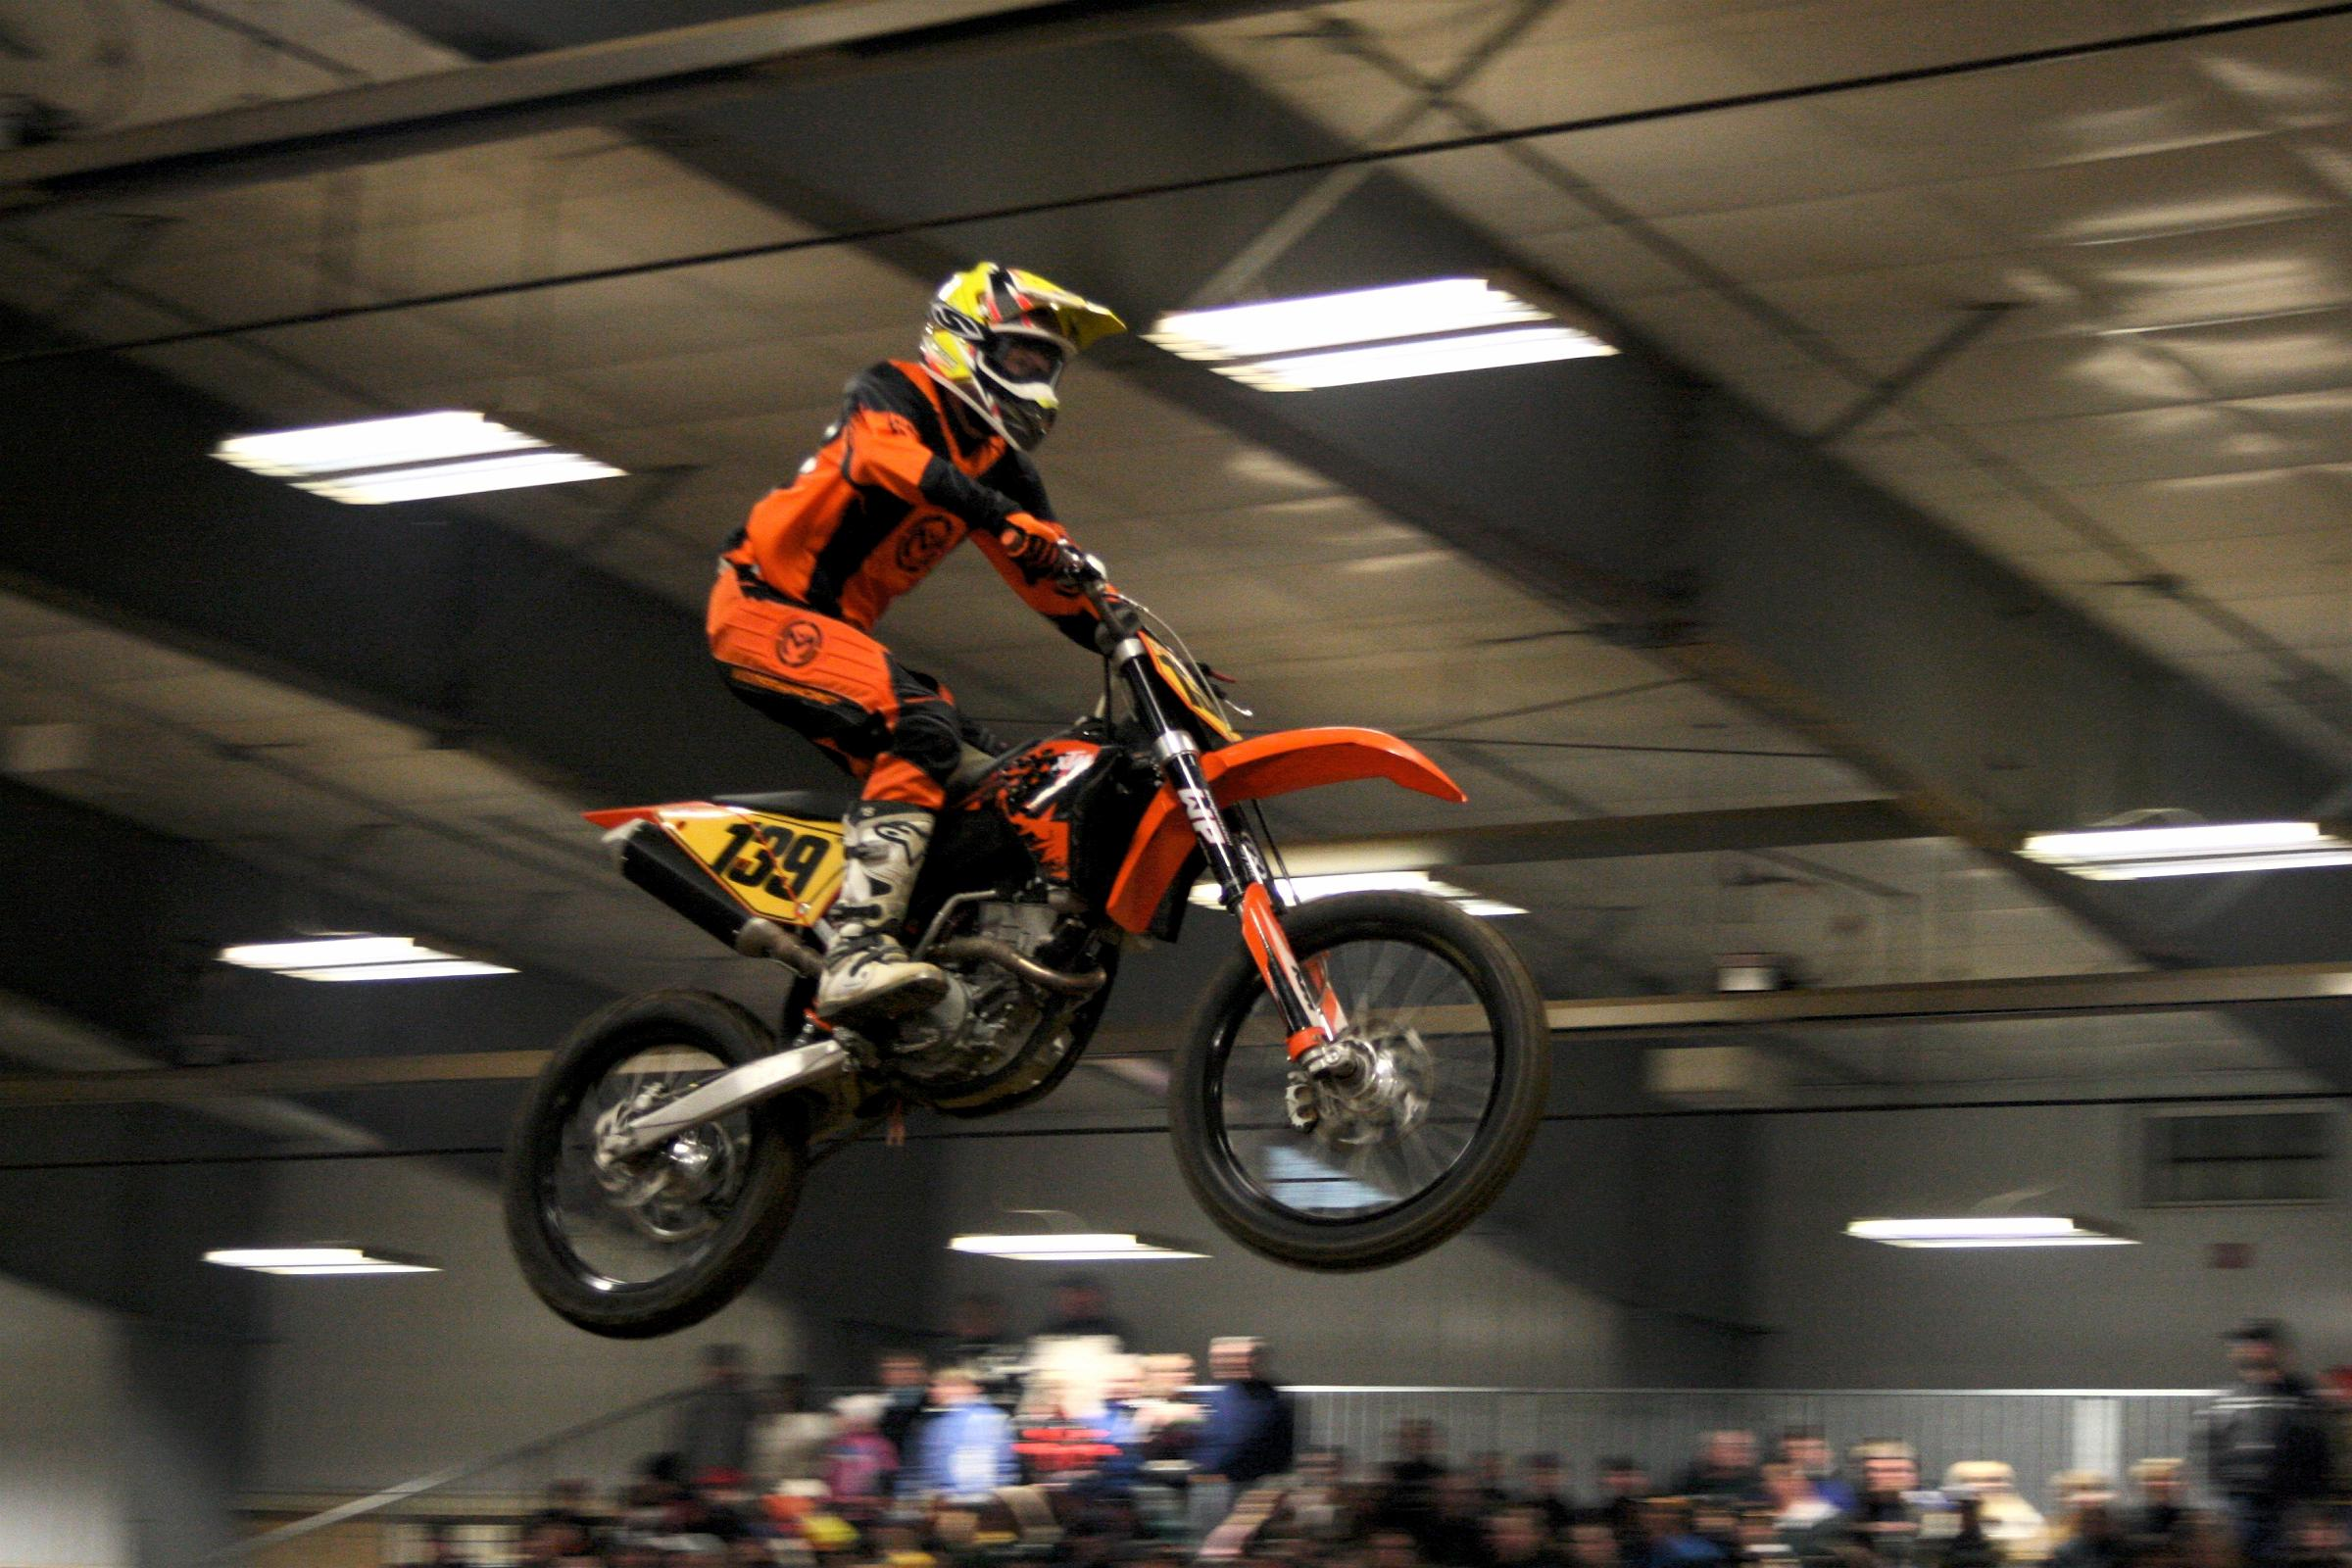 HD Motocross Ktm Backgrounds 2400x1600